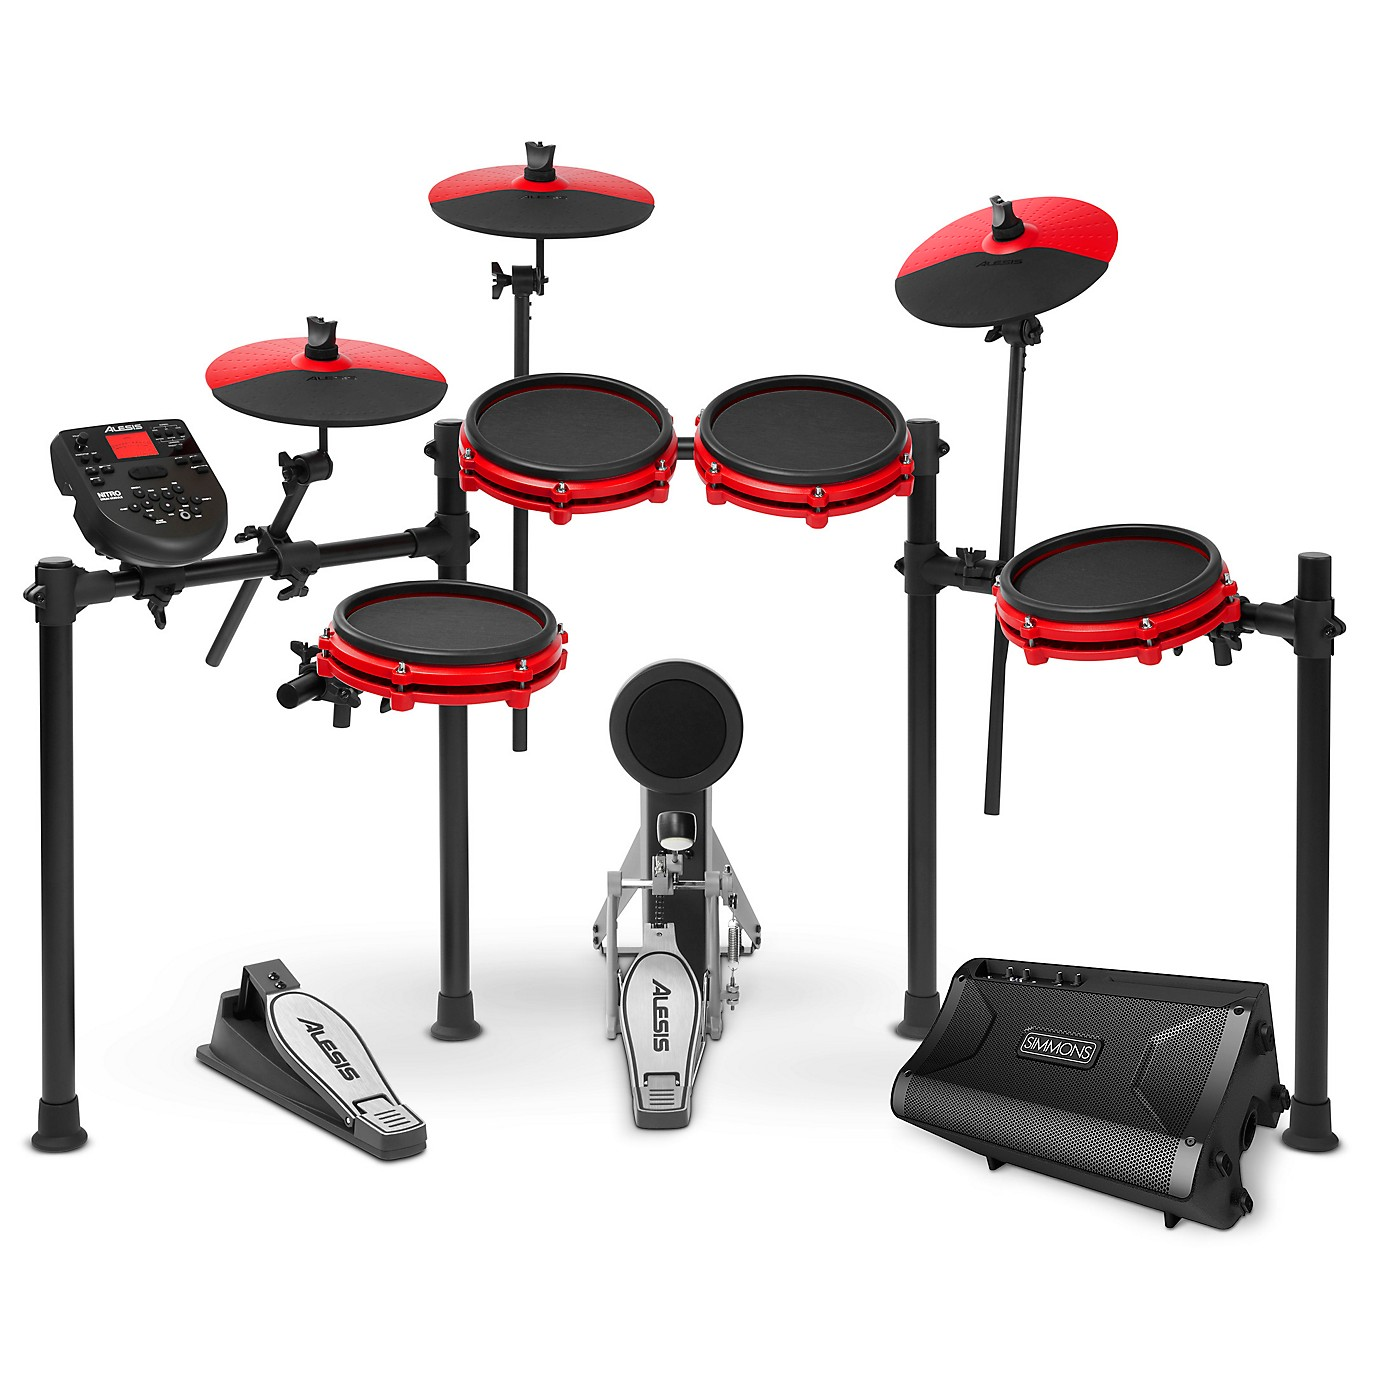 Alesis Nitro Mesh Special Edition Electronic Drum Kit With Mesh Pads and Simmons DA2108 Drum Set Monitor thumbnail